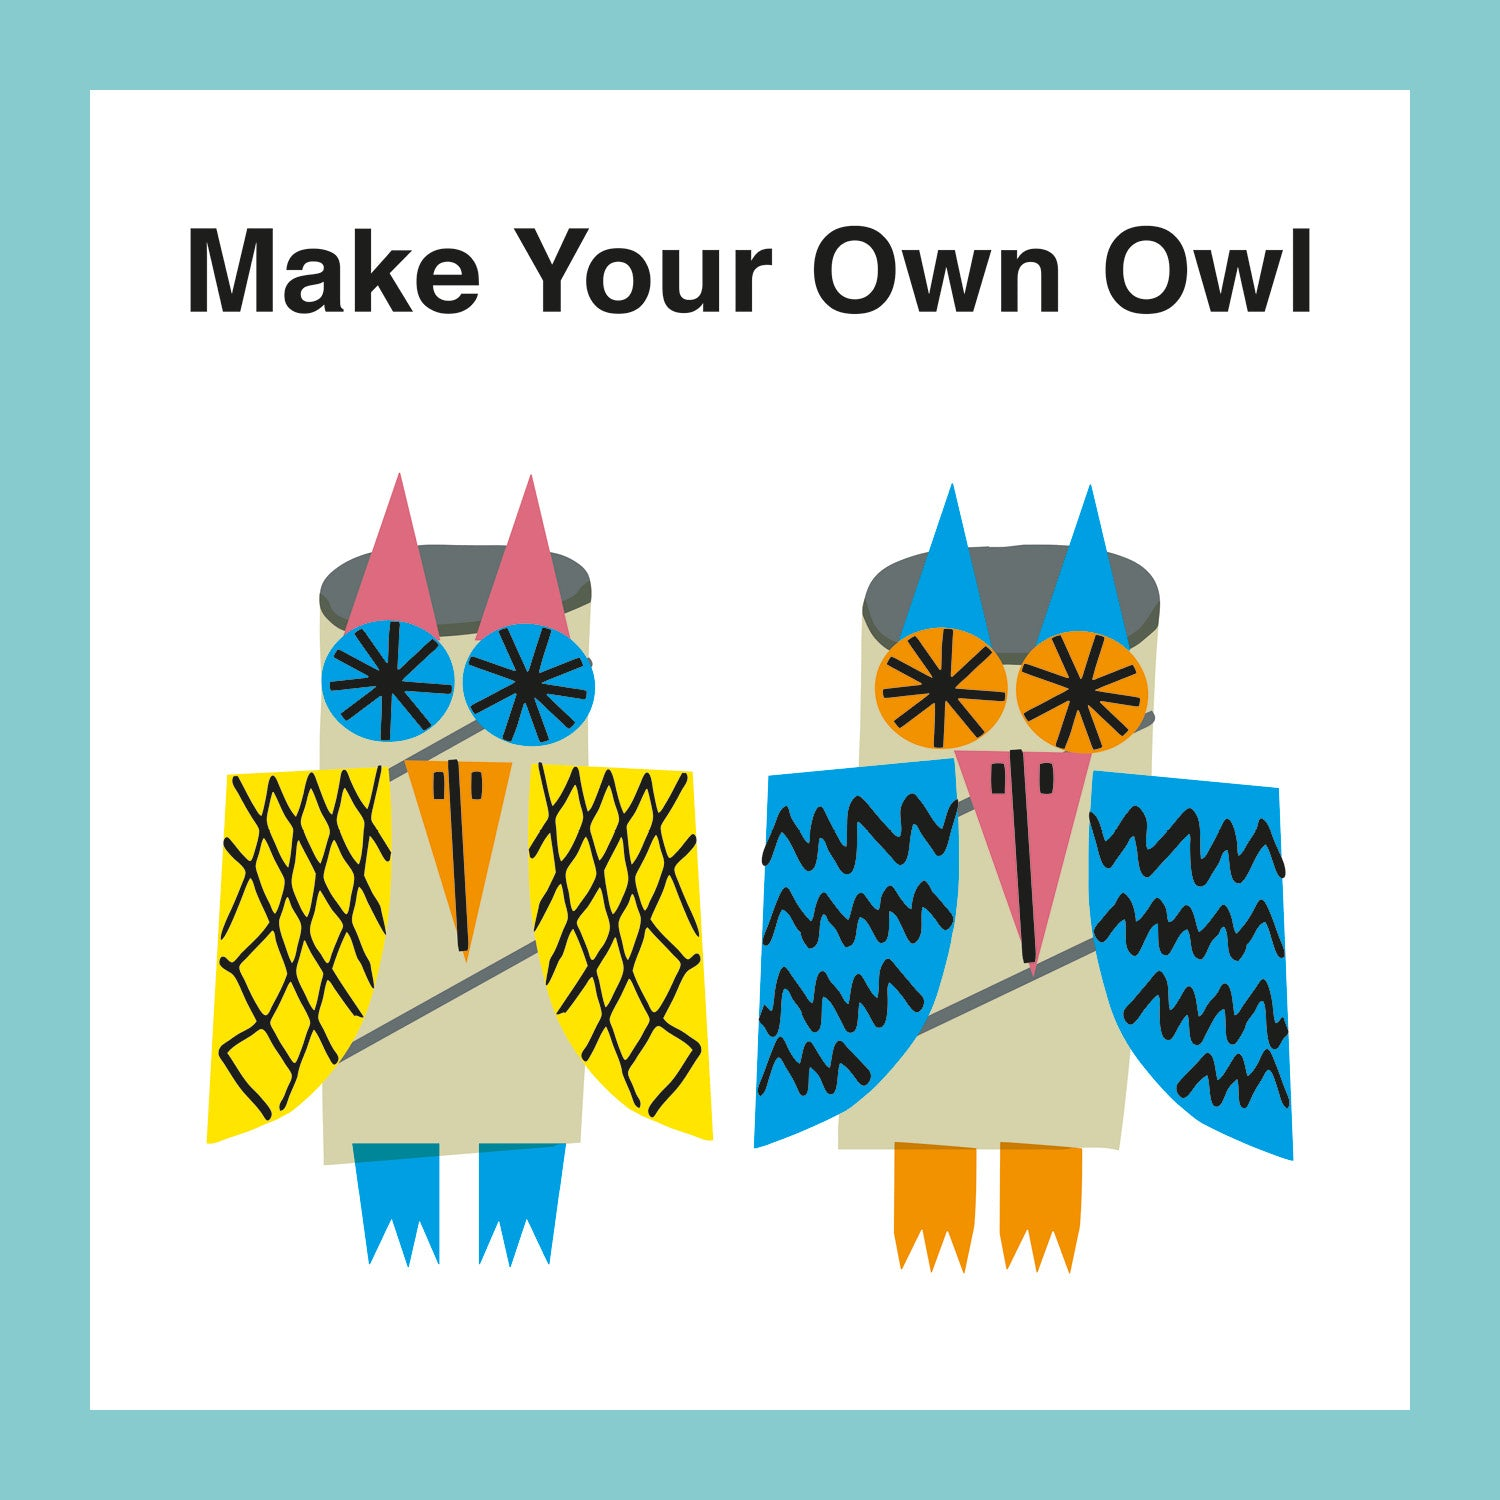 Make an Owl!